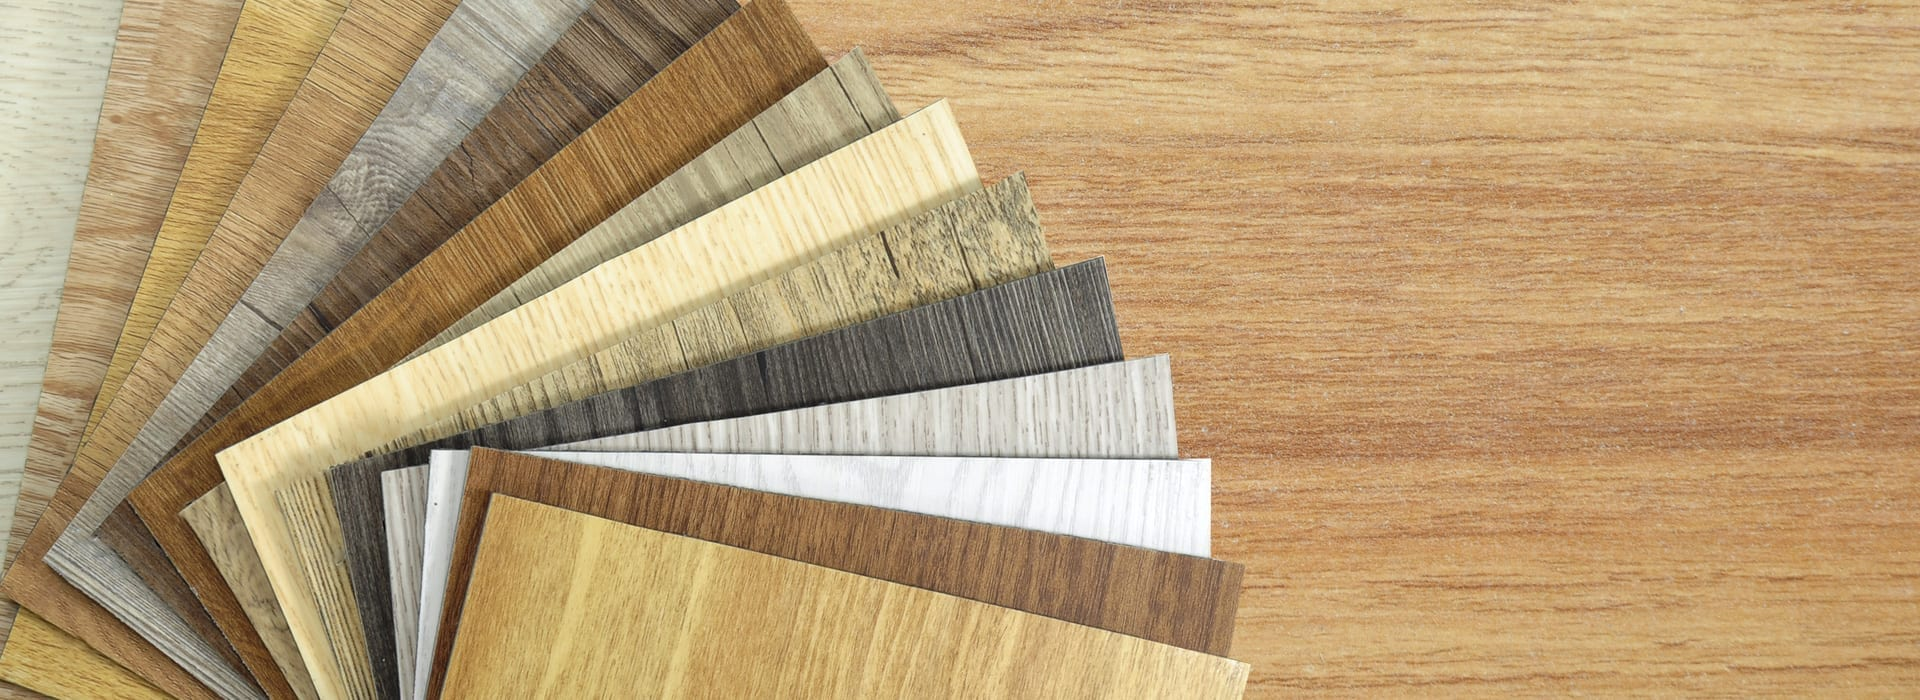 12 Things You Need to Know Before Buying Vinyl Flooring